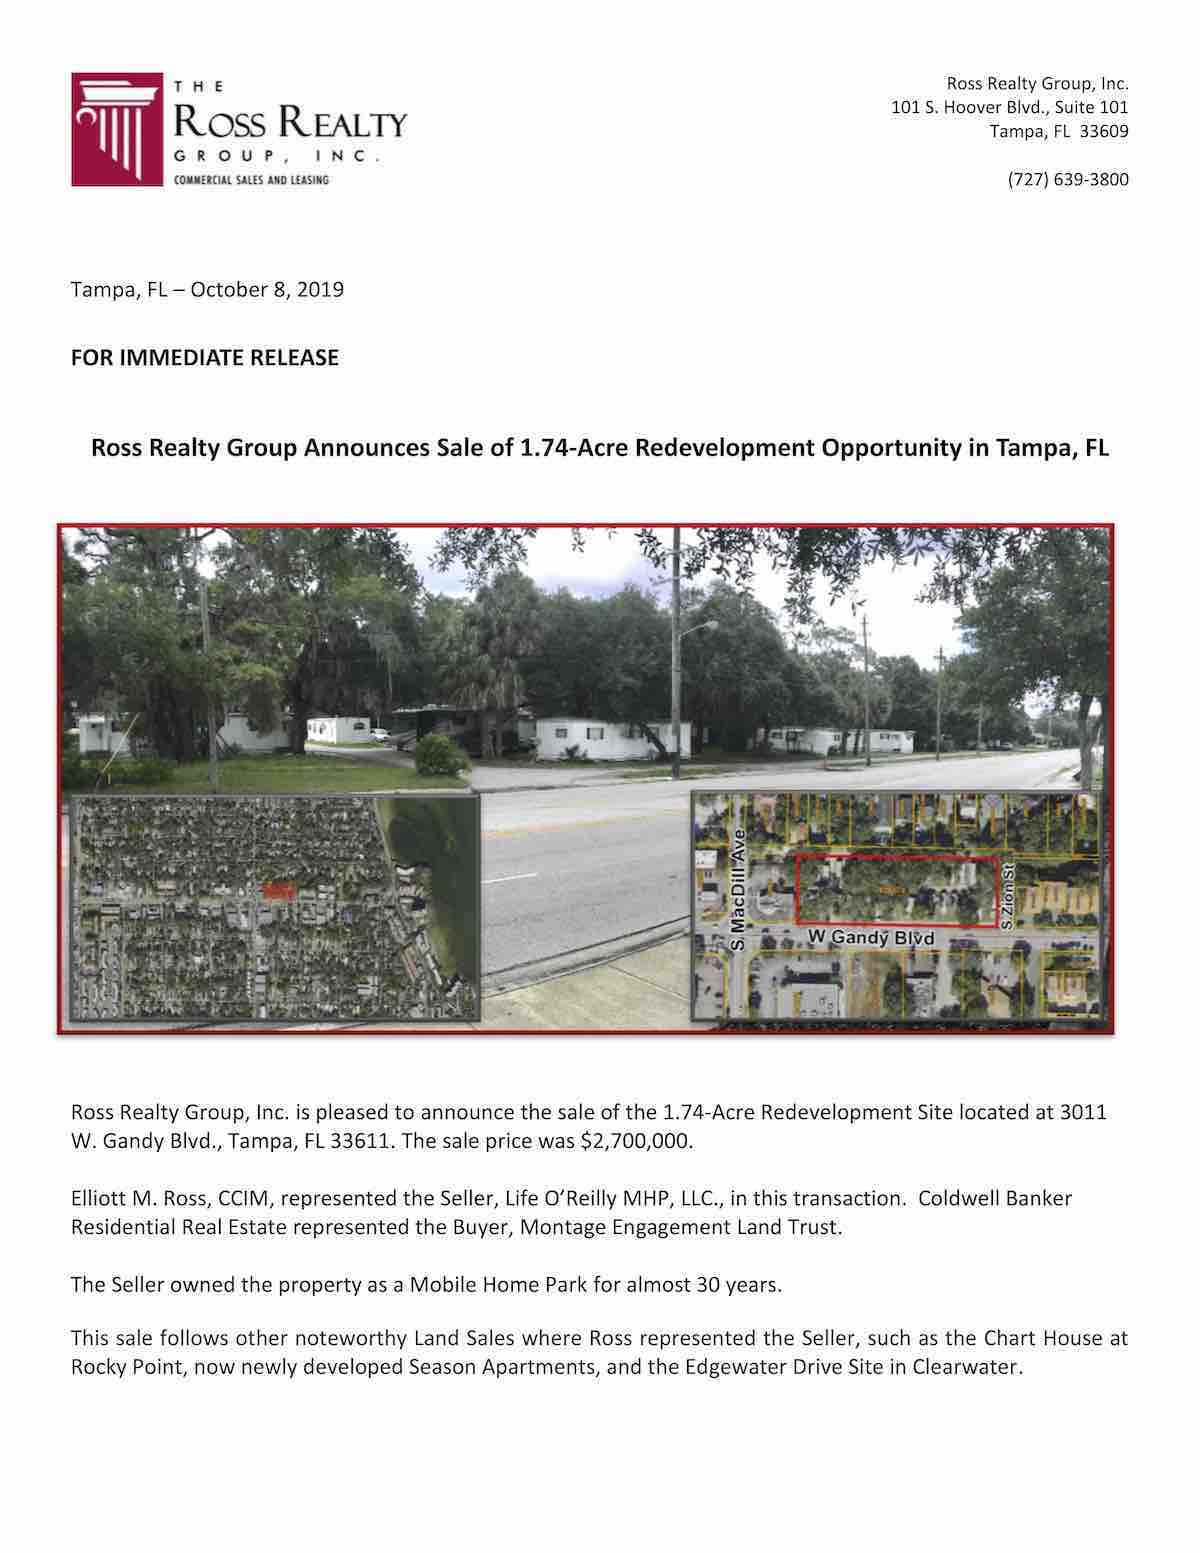 Tampa Commercial Real Estate - PR-20191098-Gandy Press Release-P1